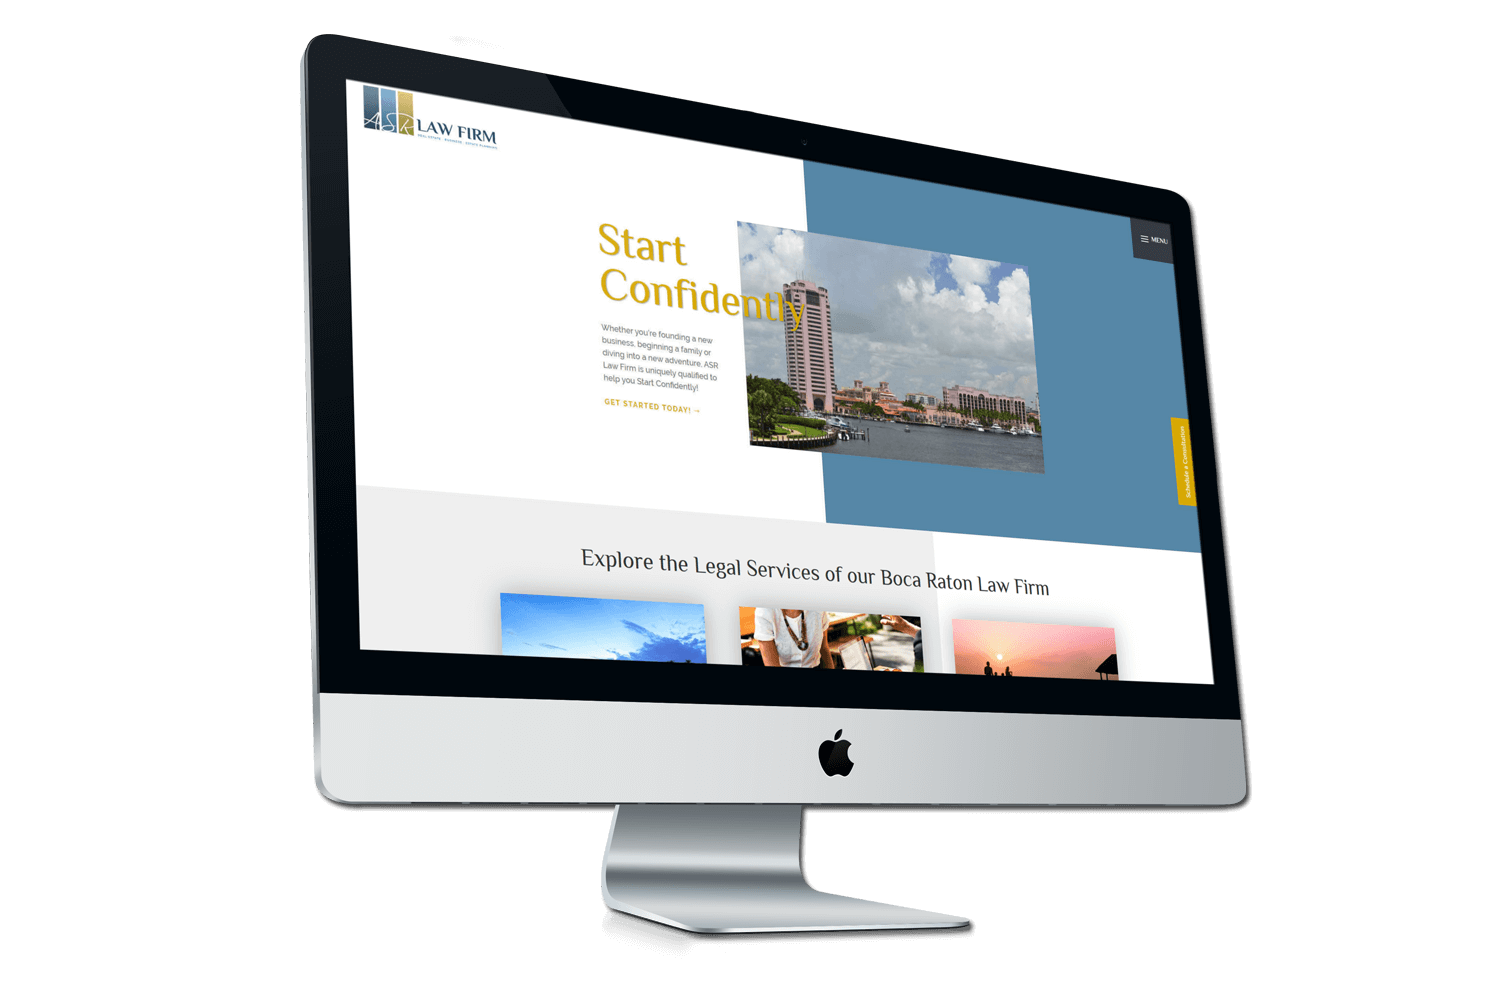 An image of the converted and redeveloped ASR Law Firm website brand.